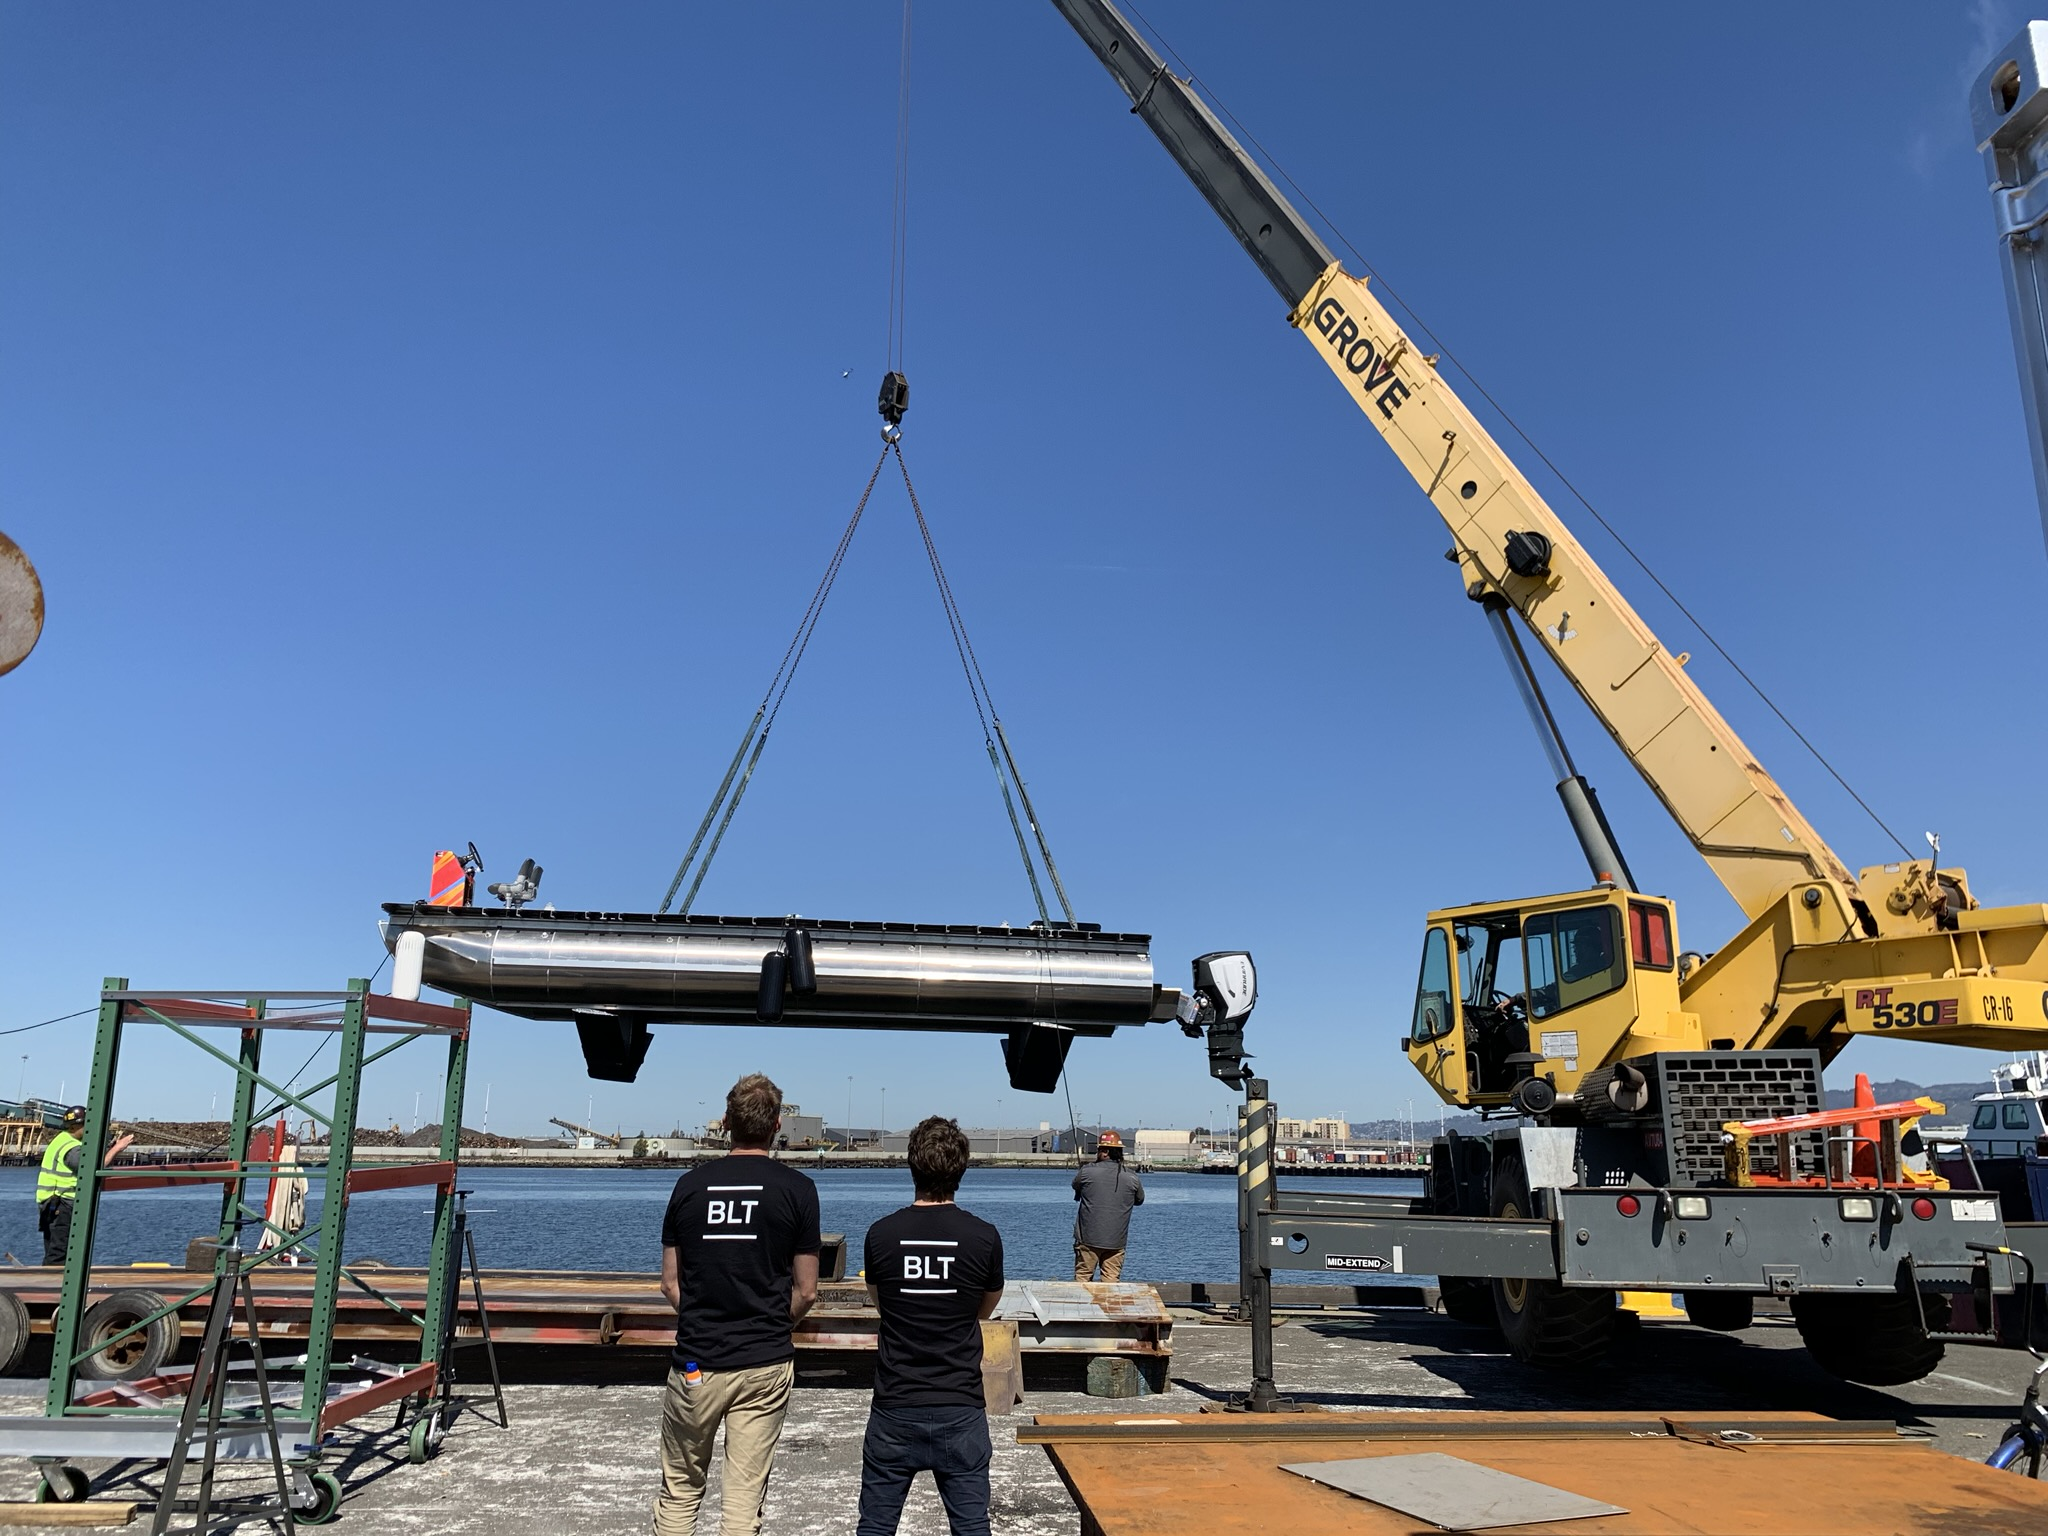 Hydrofoil prototype being carried by crane